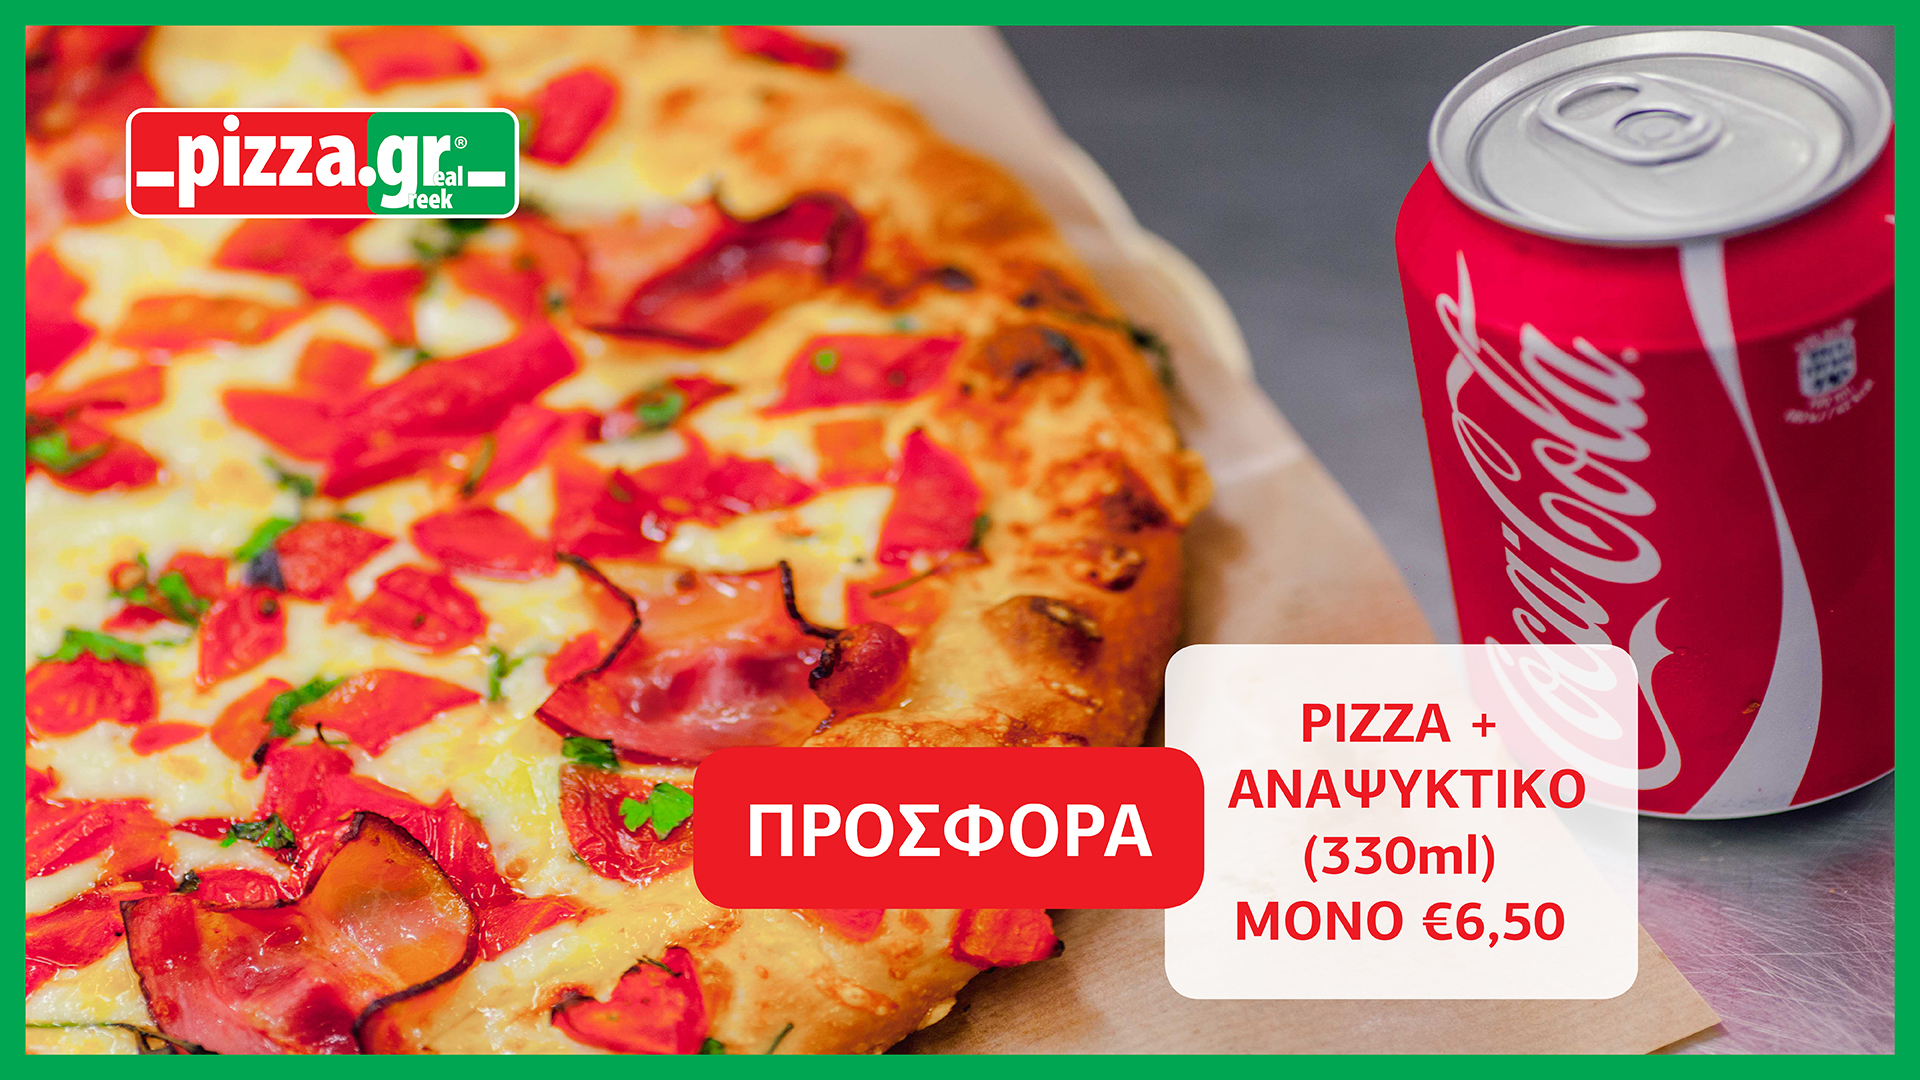 pizza gr monday offer 101016